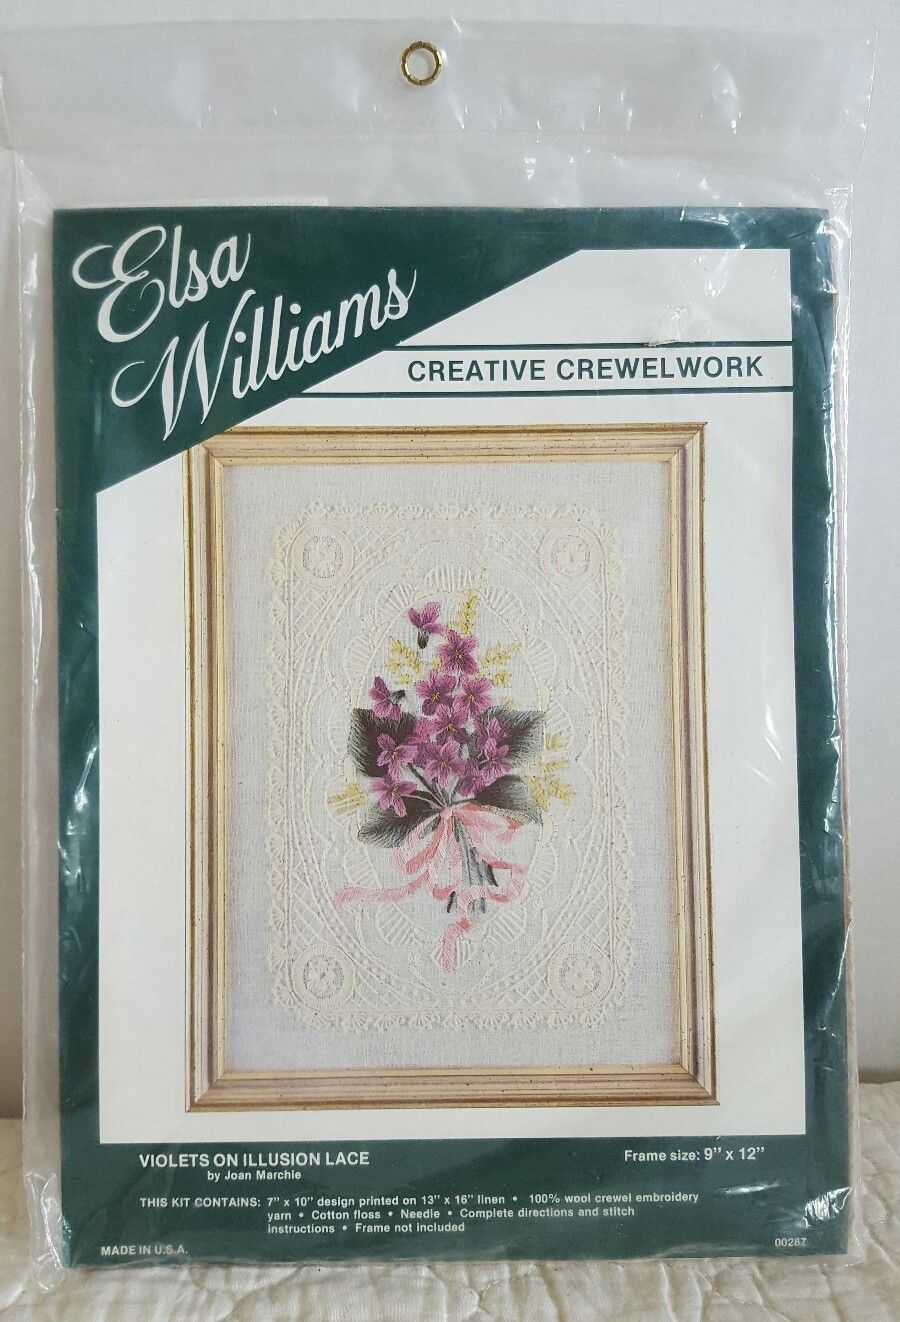 ELSA WILLIAMS Crewel Kit VIOLETS ON ILLUSION LACE by Joan Marchie #00287 New - $19.99